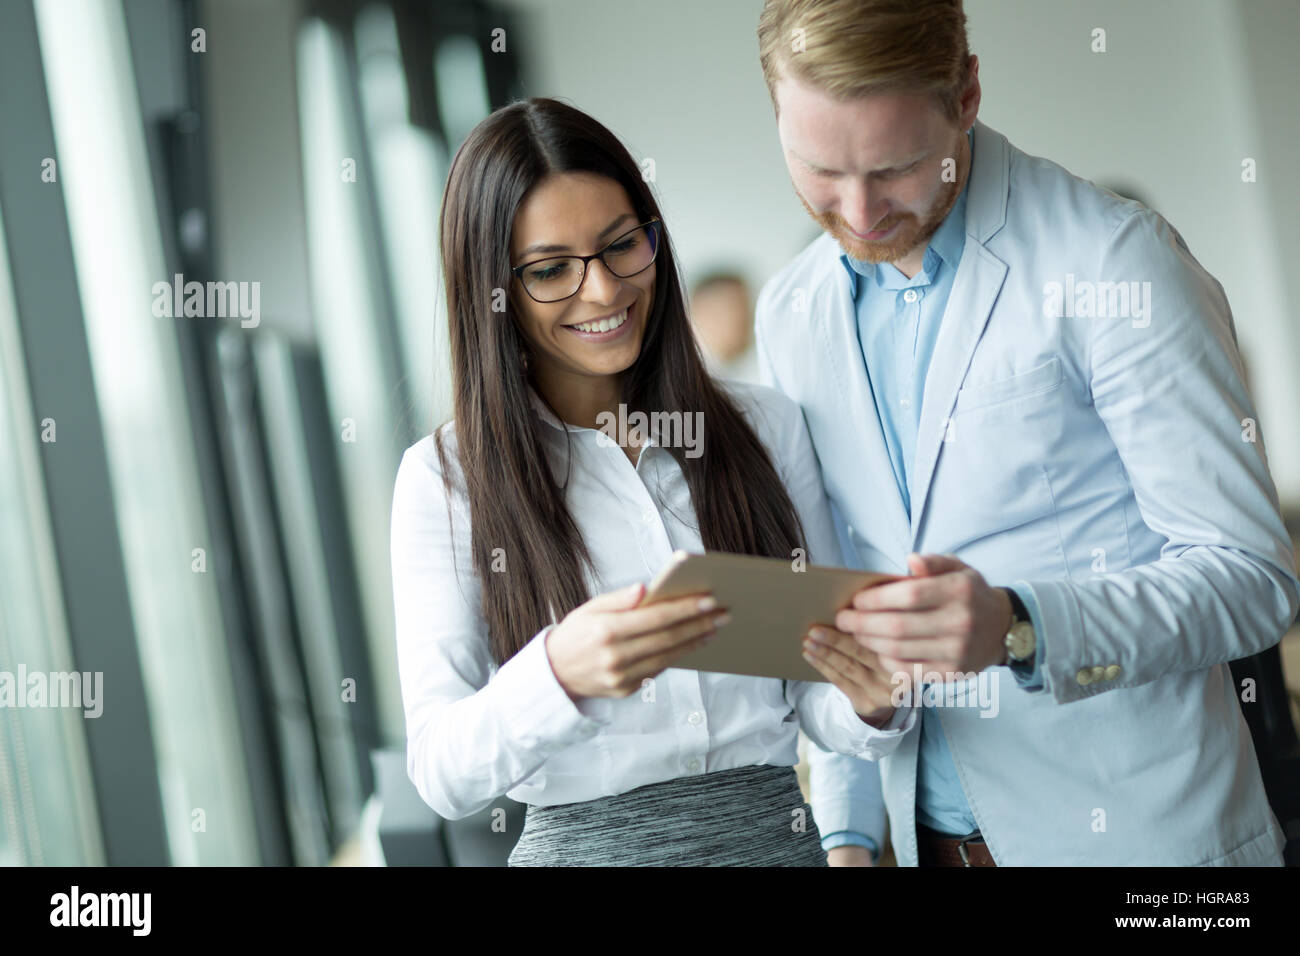 Business colleagues at information technology company offices Stock Photo